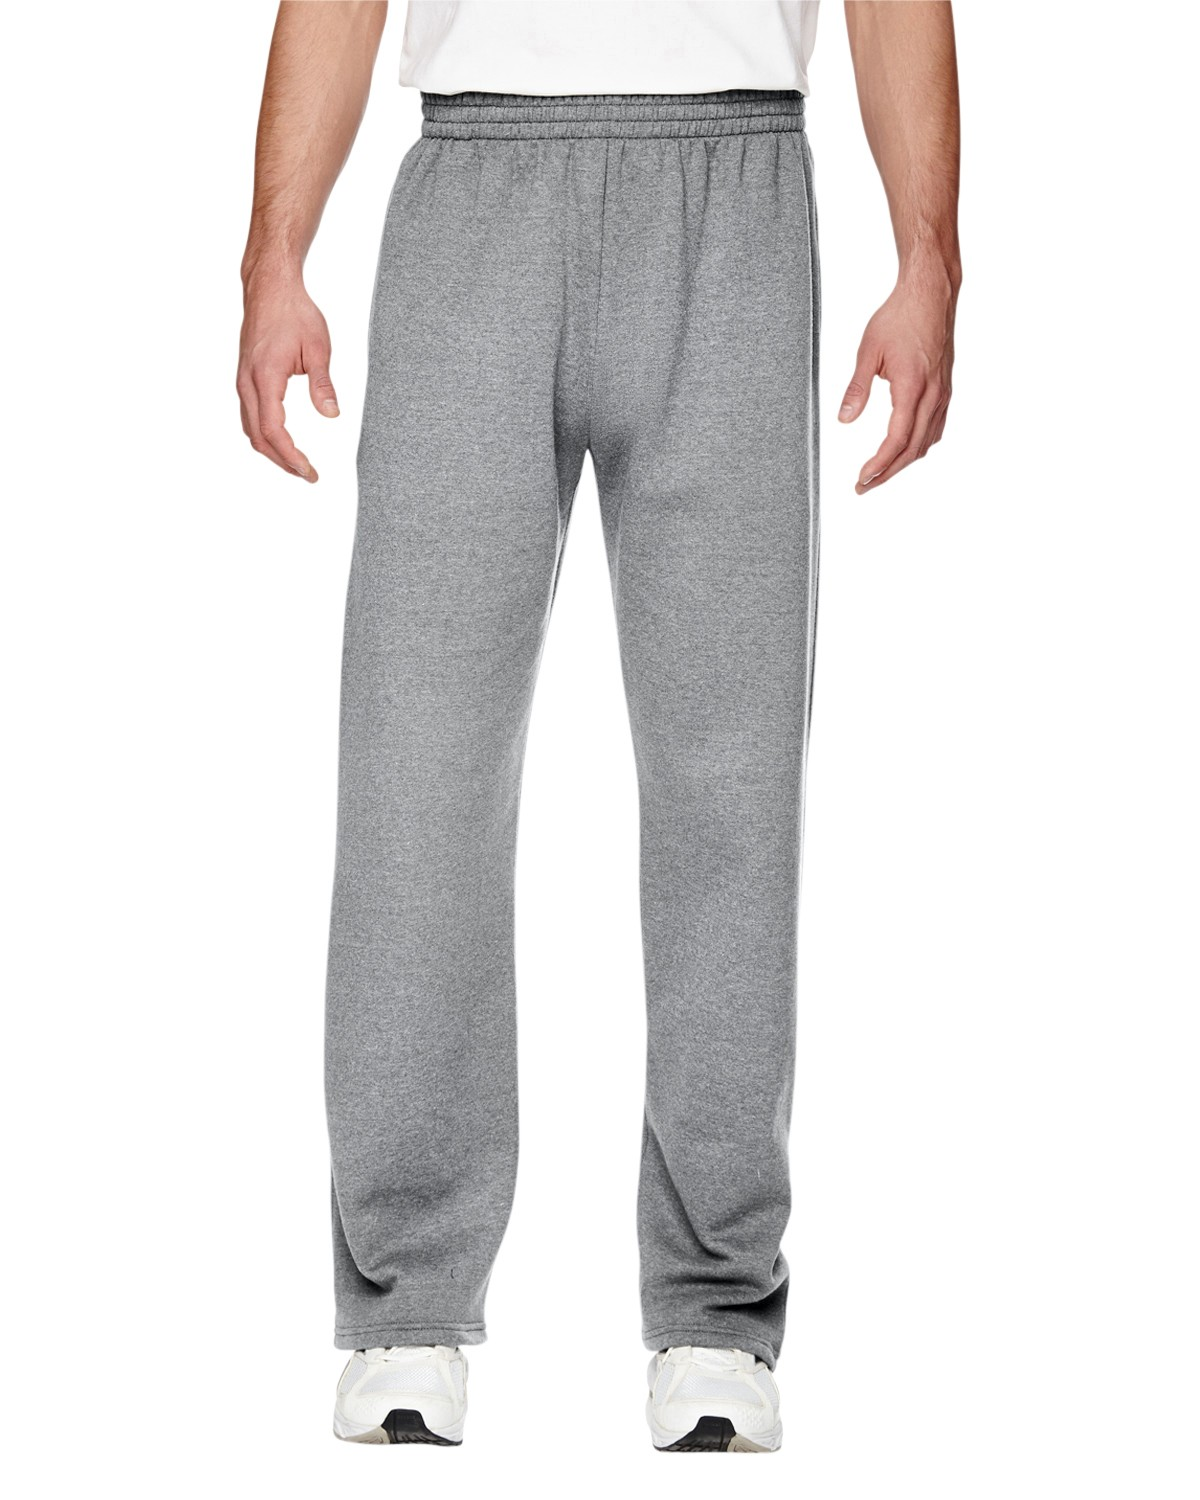 SF74R Fruit of the Loom ATHLETIC HEATHER